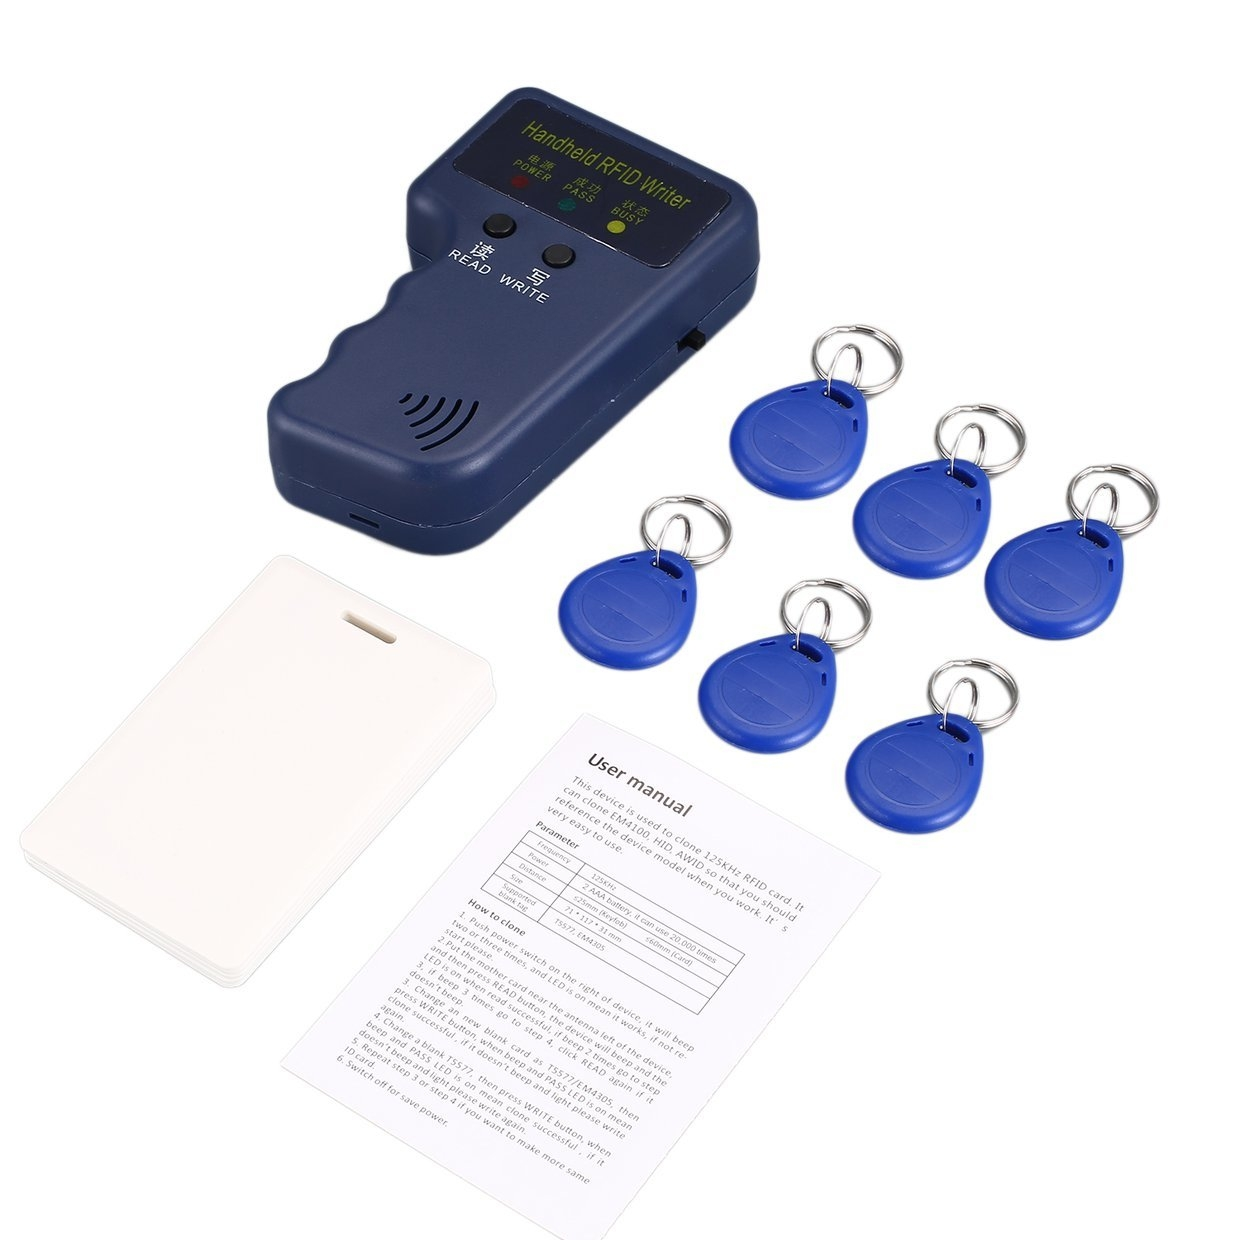 Generic Handheld RFID Copier Card Reader Writer Duplicator